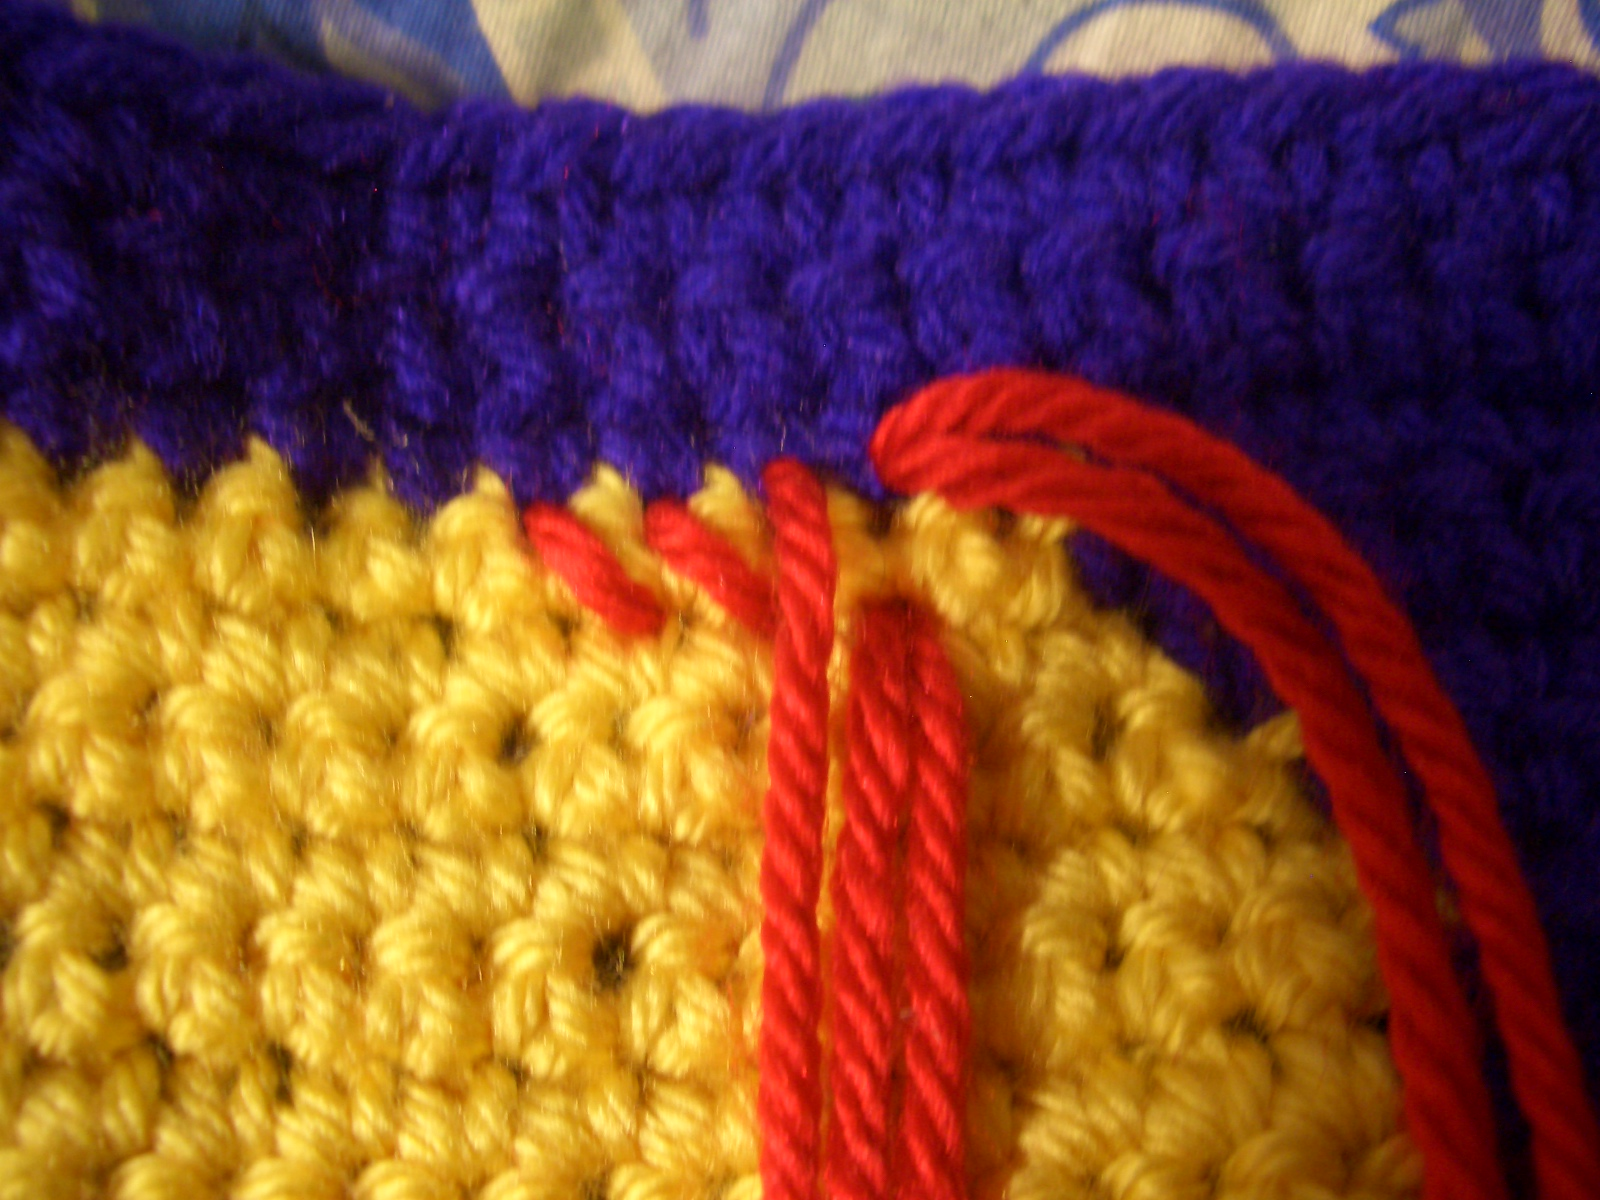 are making diagonal stitches, continue making the diagonal stitches ...